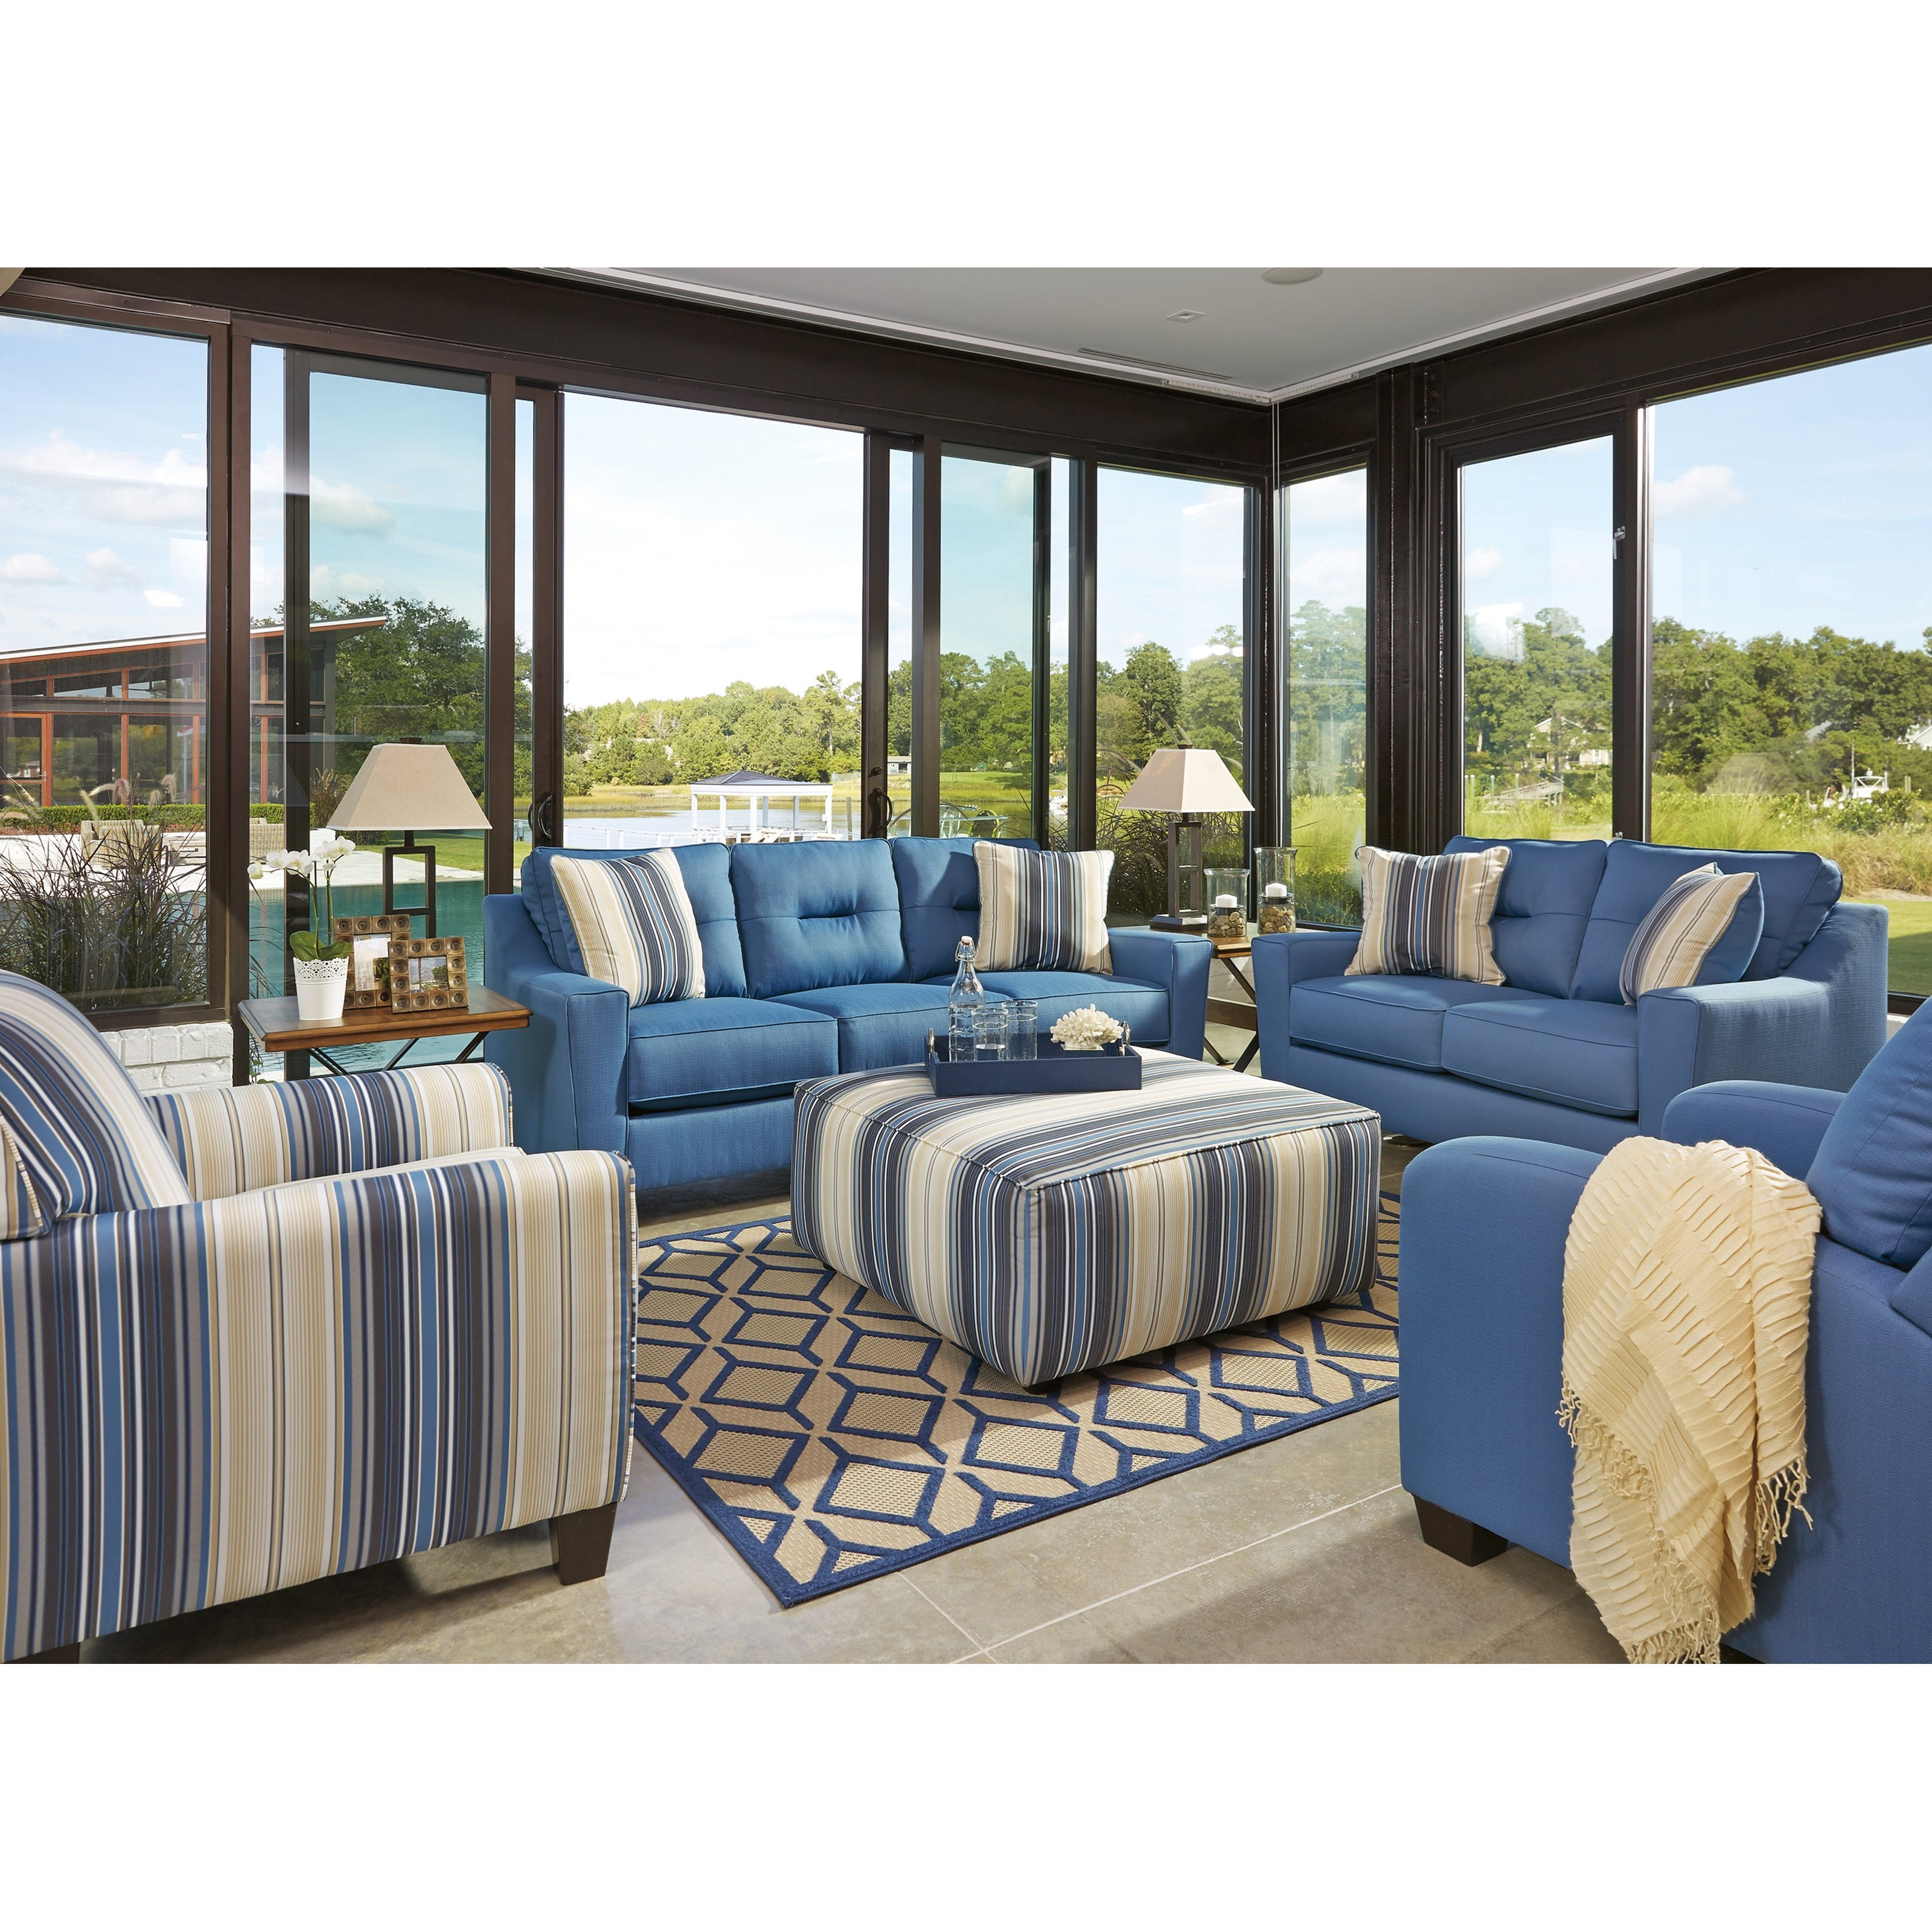 Benchcraft Forsan Nuvella Stationary Living Room Group Value City Furniture Stationary